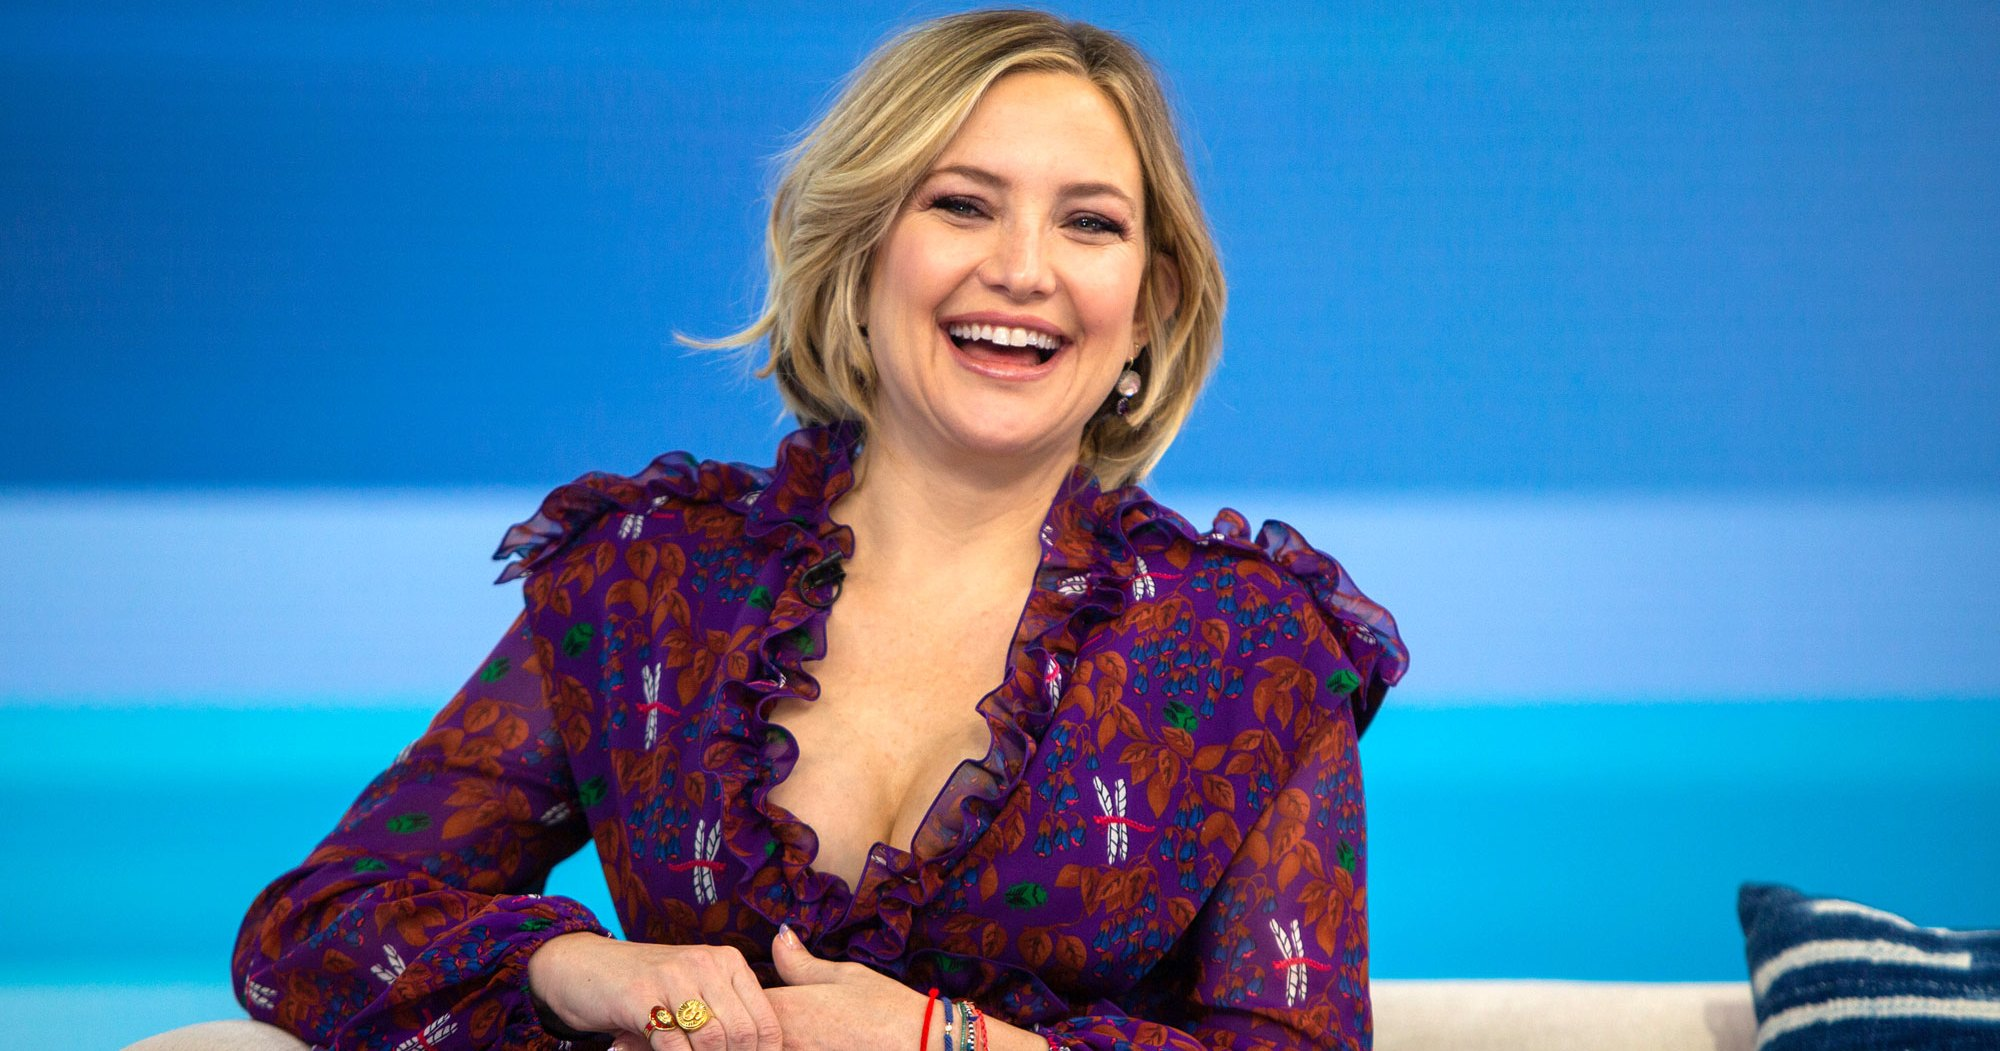 Kate Hudson's All-Time Most Inspiring Advice on Fitness, Diet, Health and Wellness